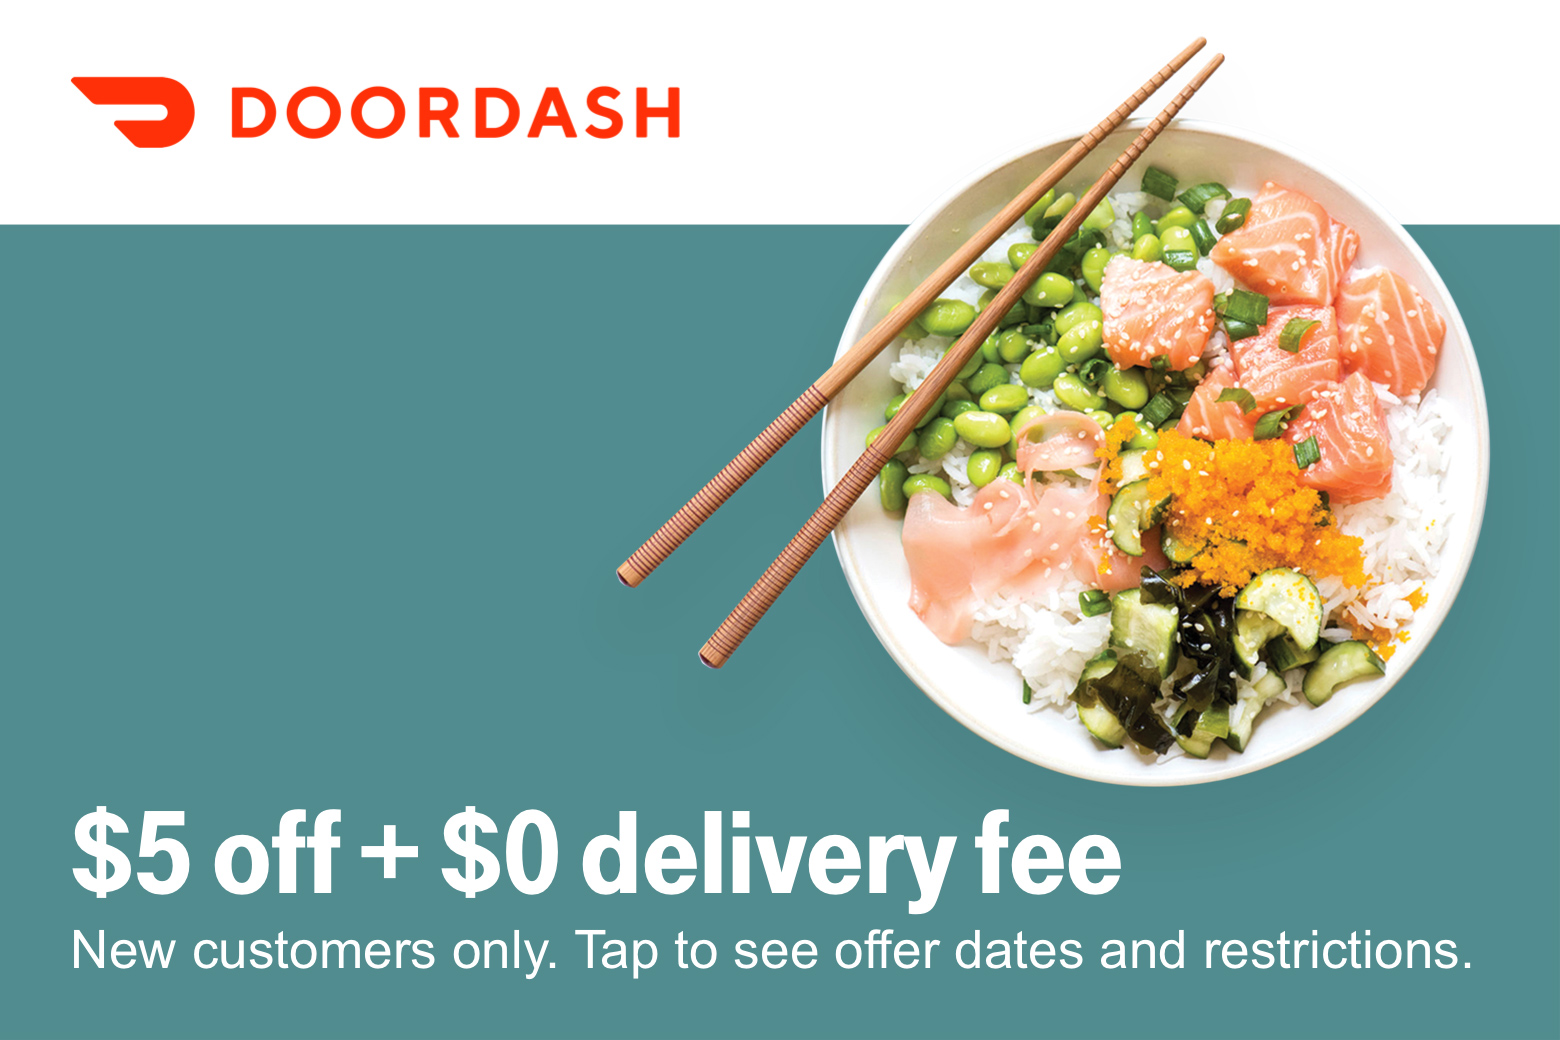 Doordash. $5 off + $0 delivery fee. New customers only. Tap to see offer dates and restrictions.